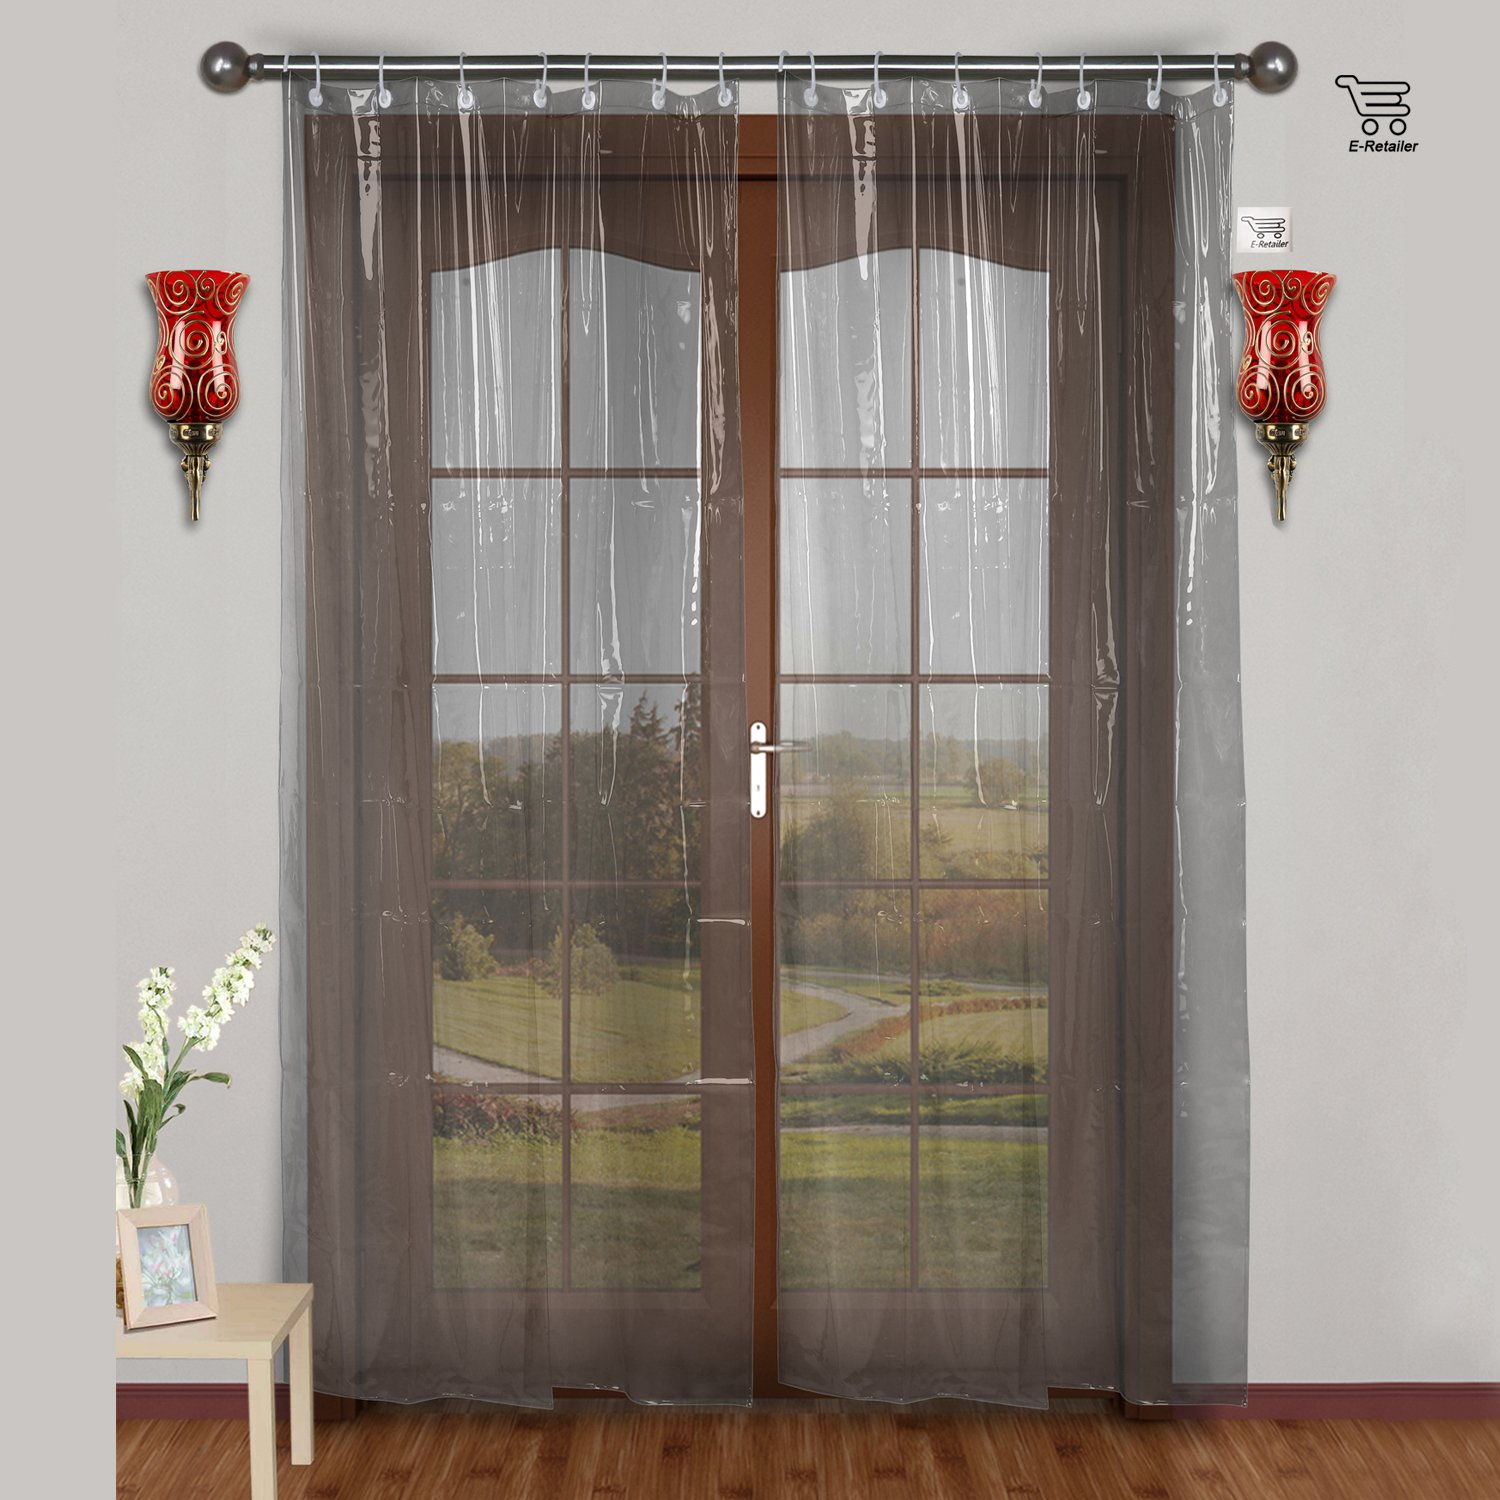 colorful luxury furniture of drapes panels unique style living decor from moreover large ab and new size ideas india for awesome walmart amusing room fancy best exterior design online front window curtains curtain home